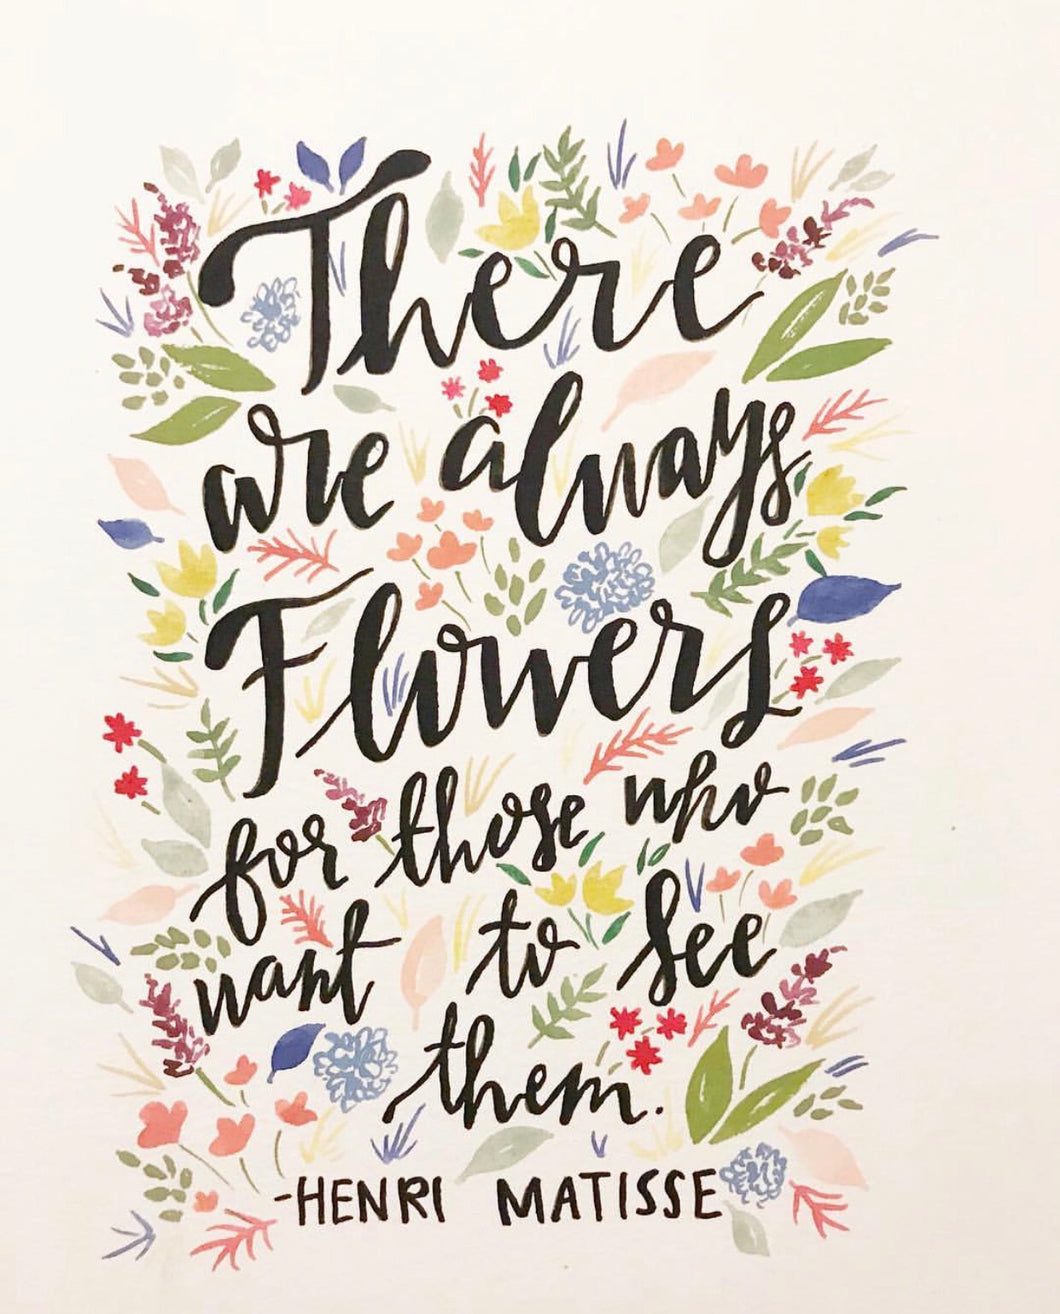 There are always flowers